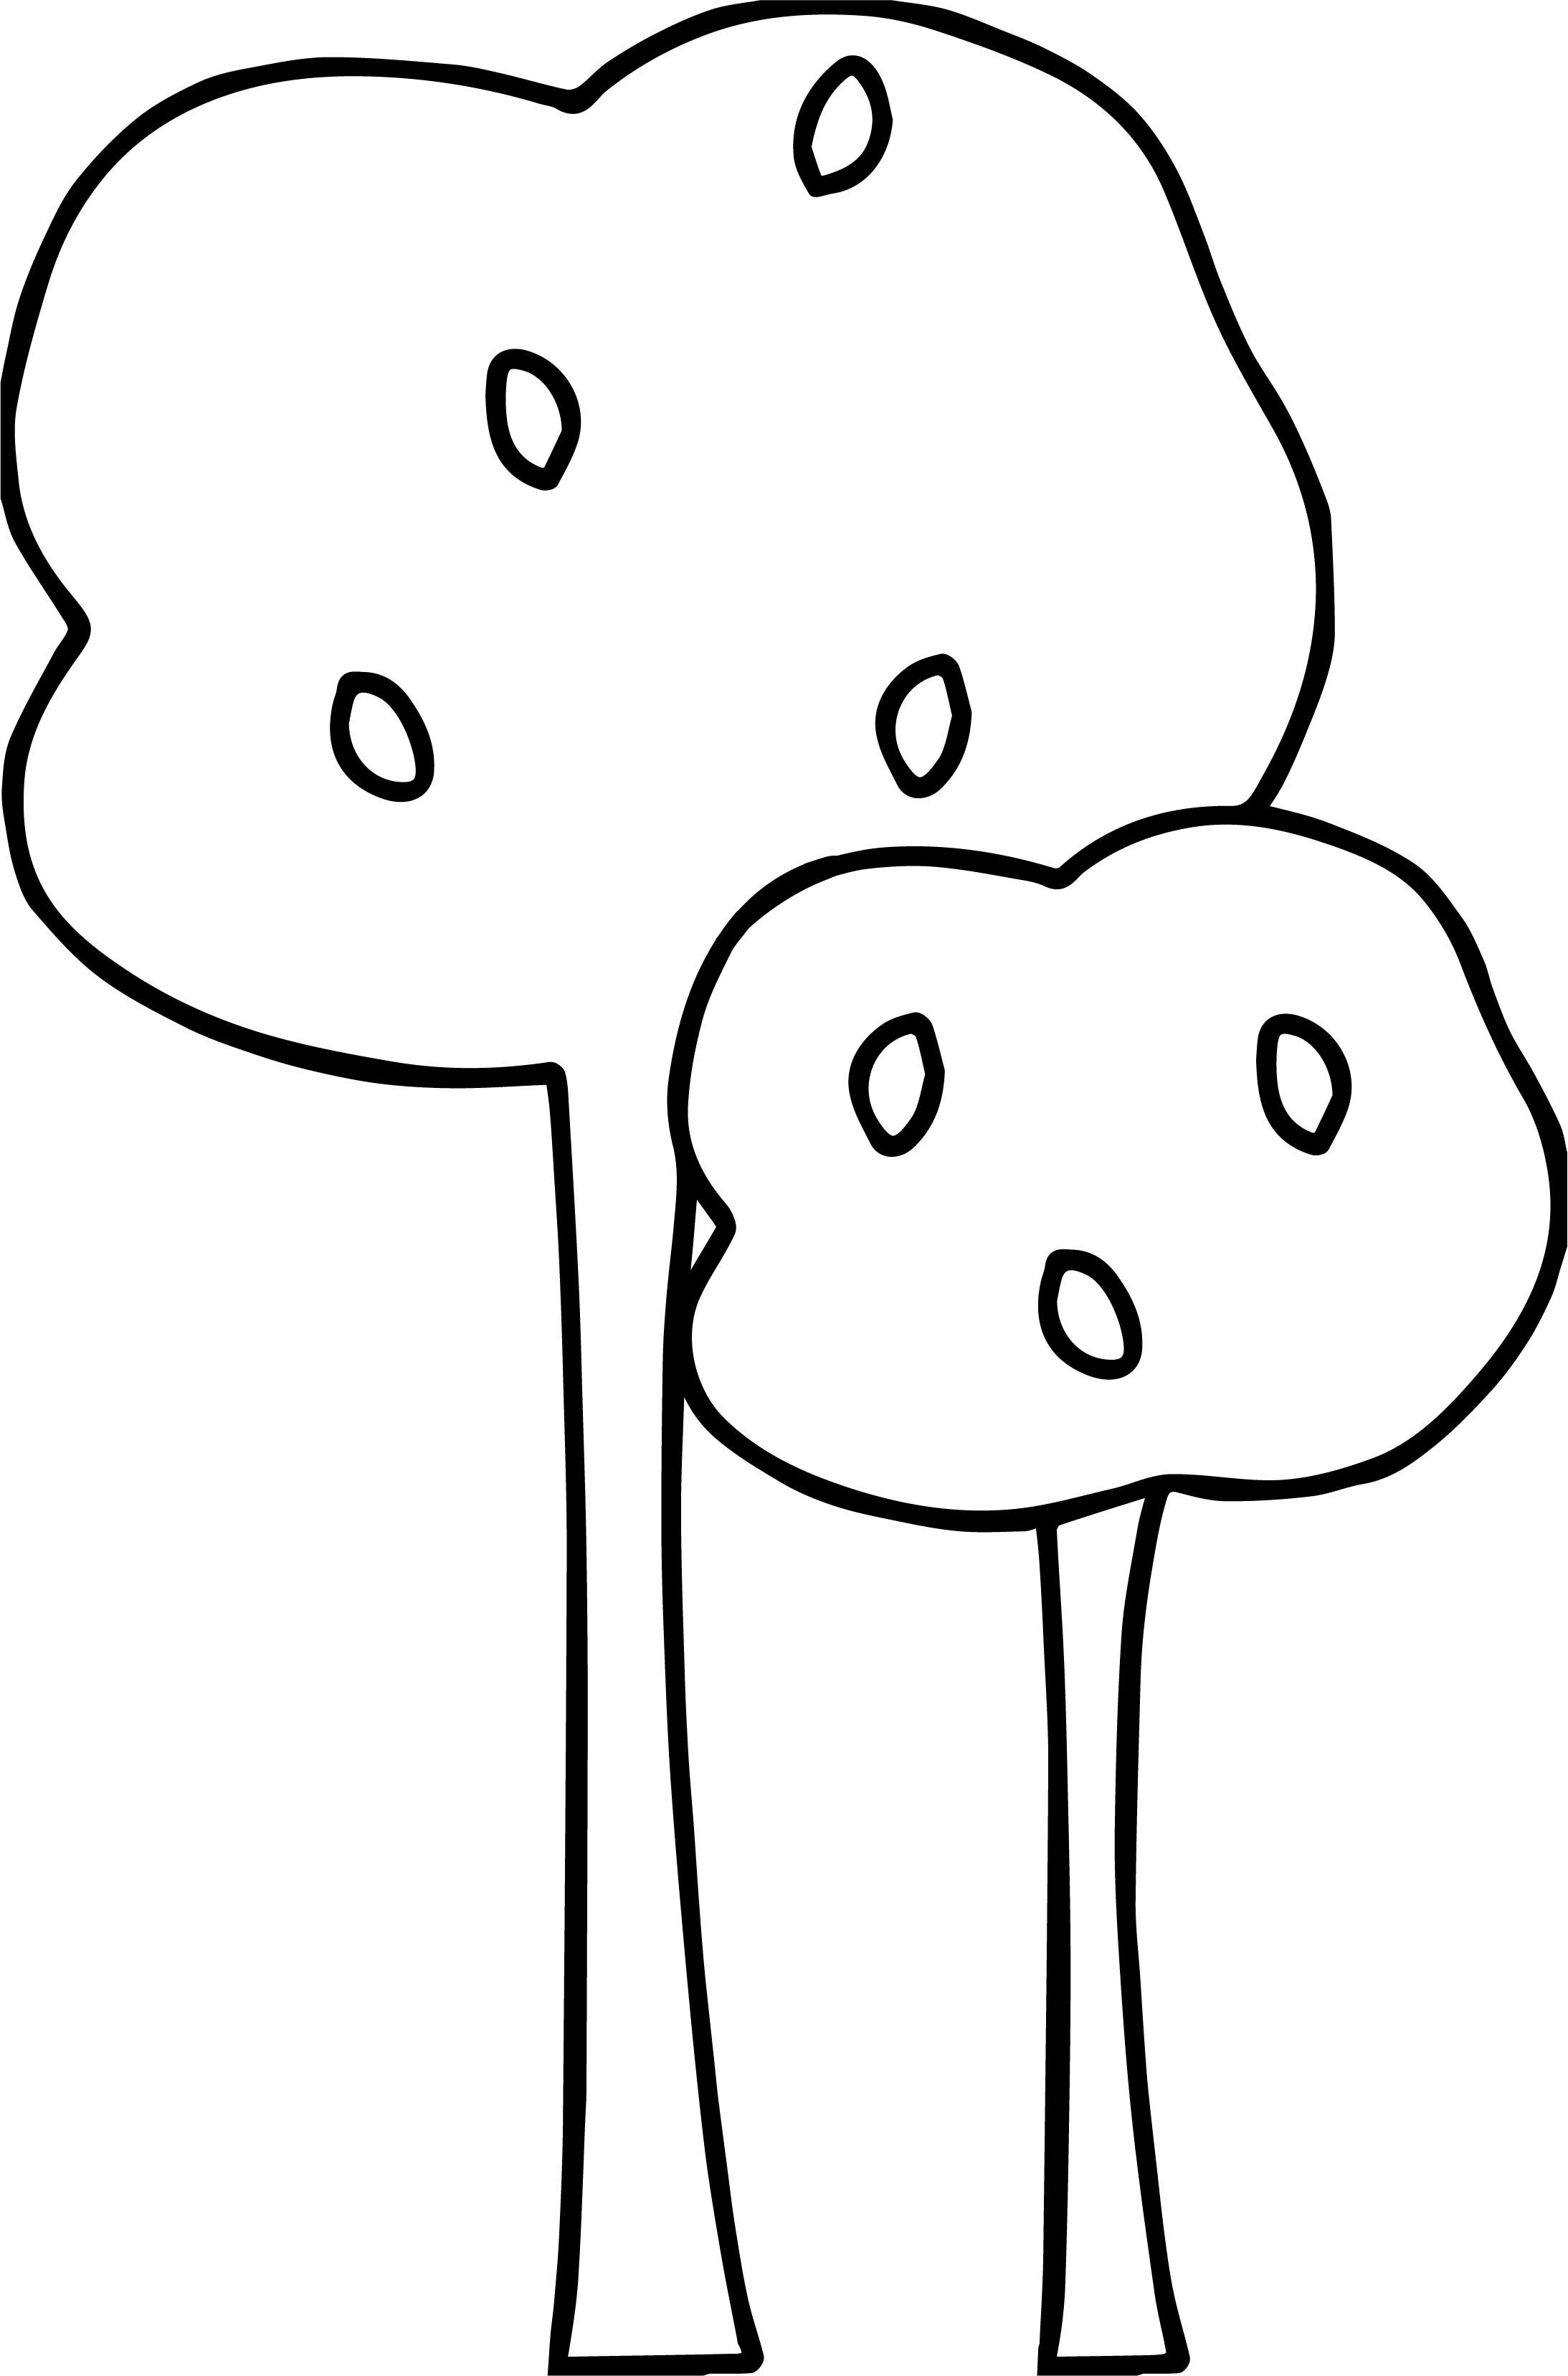 Nice Autumn Small And Tall Tree Coloring Page Tree Coloring Page Flower Coloring Pages Coloring Pages